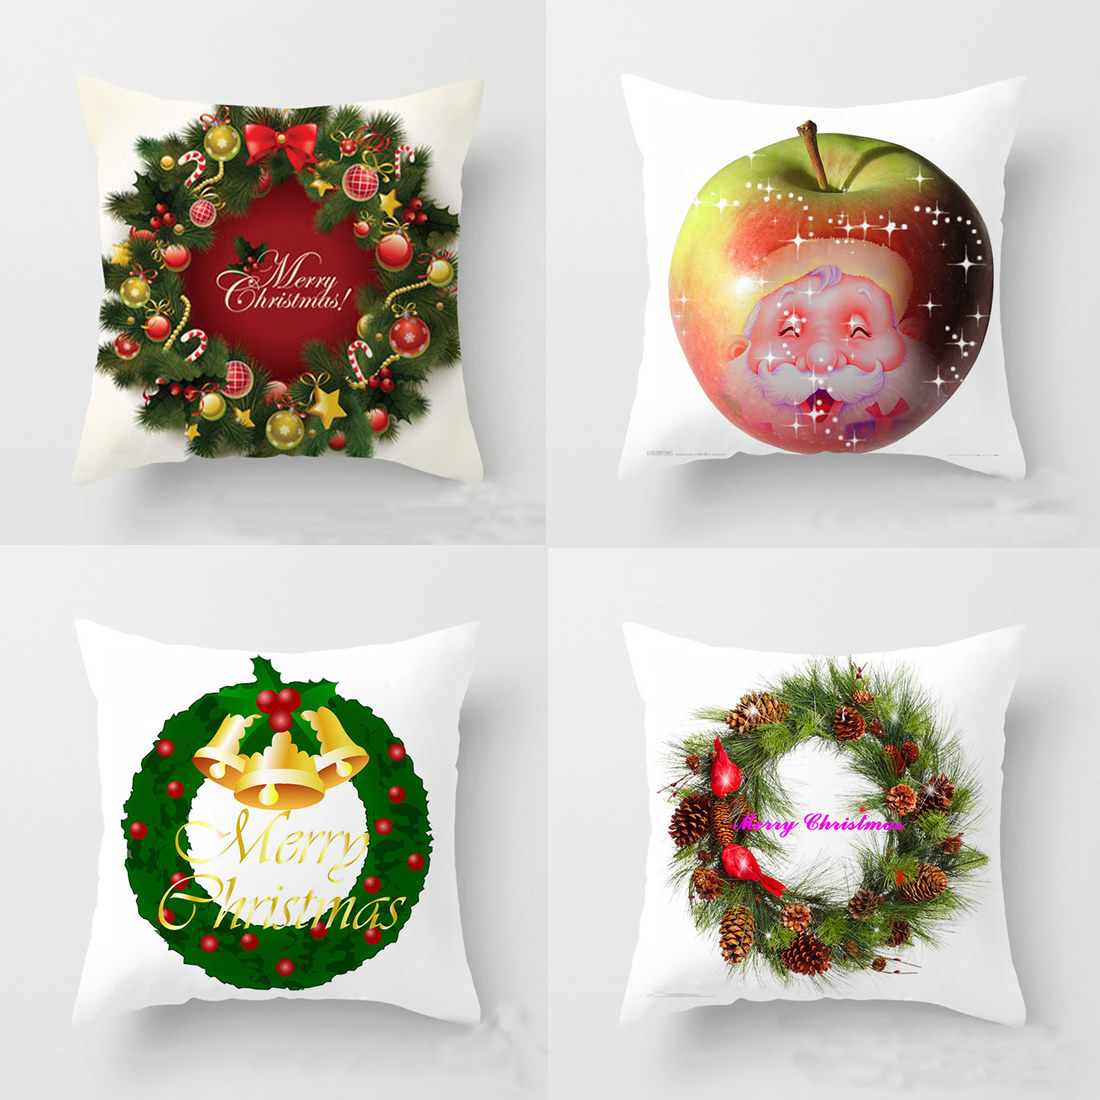 Merry Christmas Cushion Cover Santa Claus Apple Pillow Case Pillowcase Throw Cover For Sofa Car Decorative Home Textile F